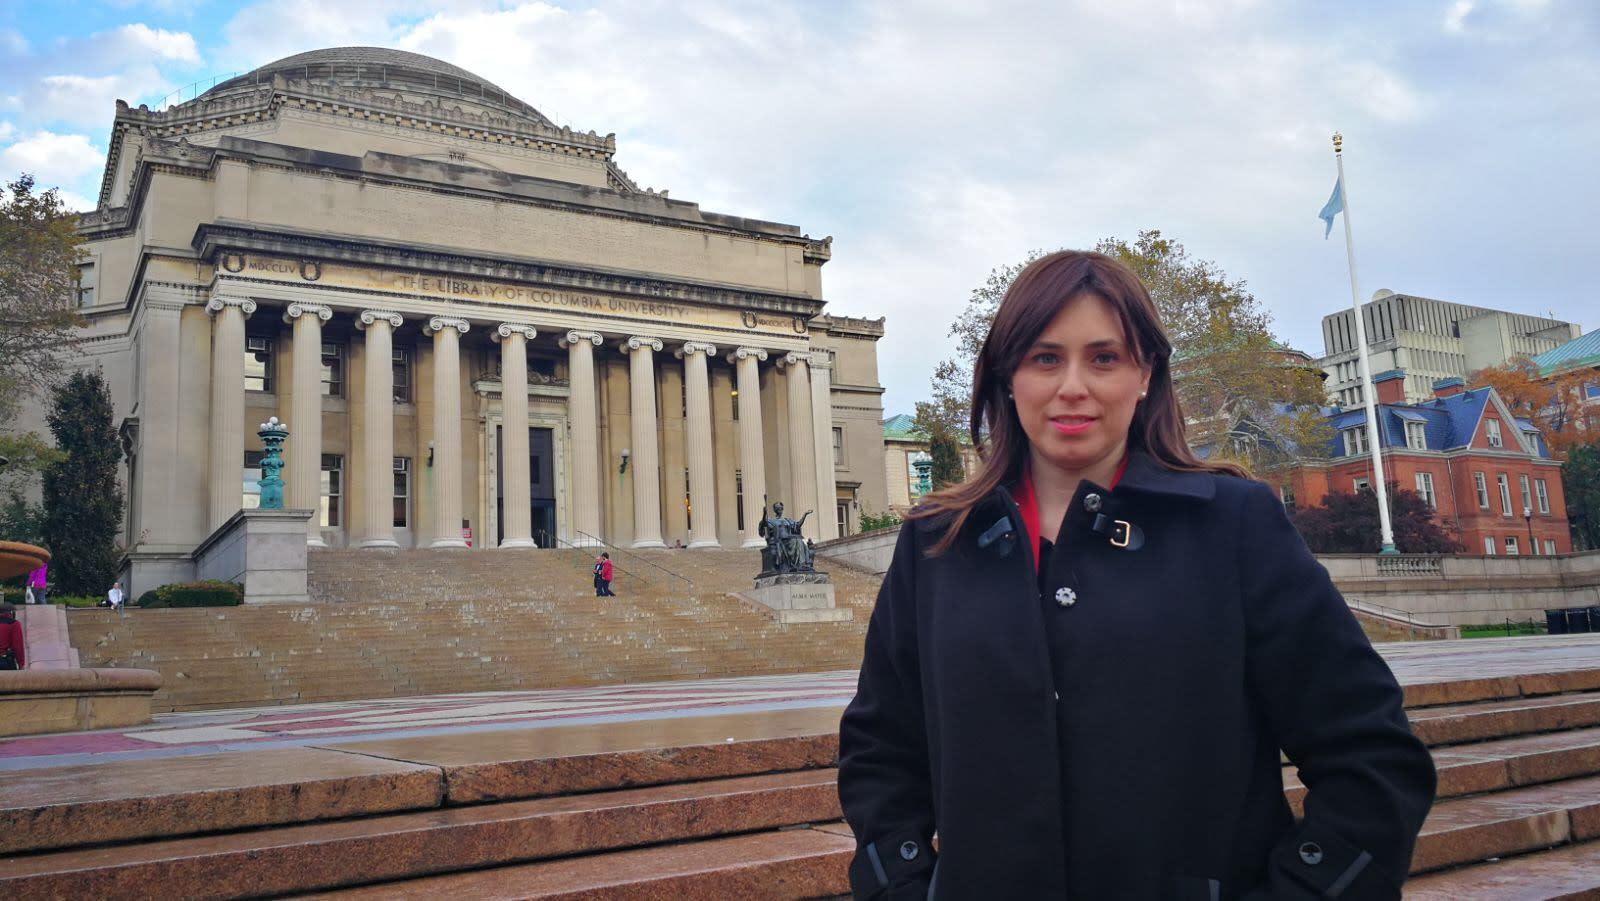 Deputy Foreign Minister Tzipi Hotovely pictured at Columbia University. (photo credit: Courtesy)